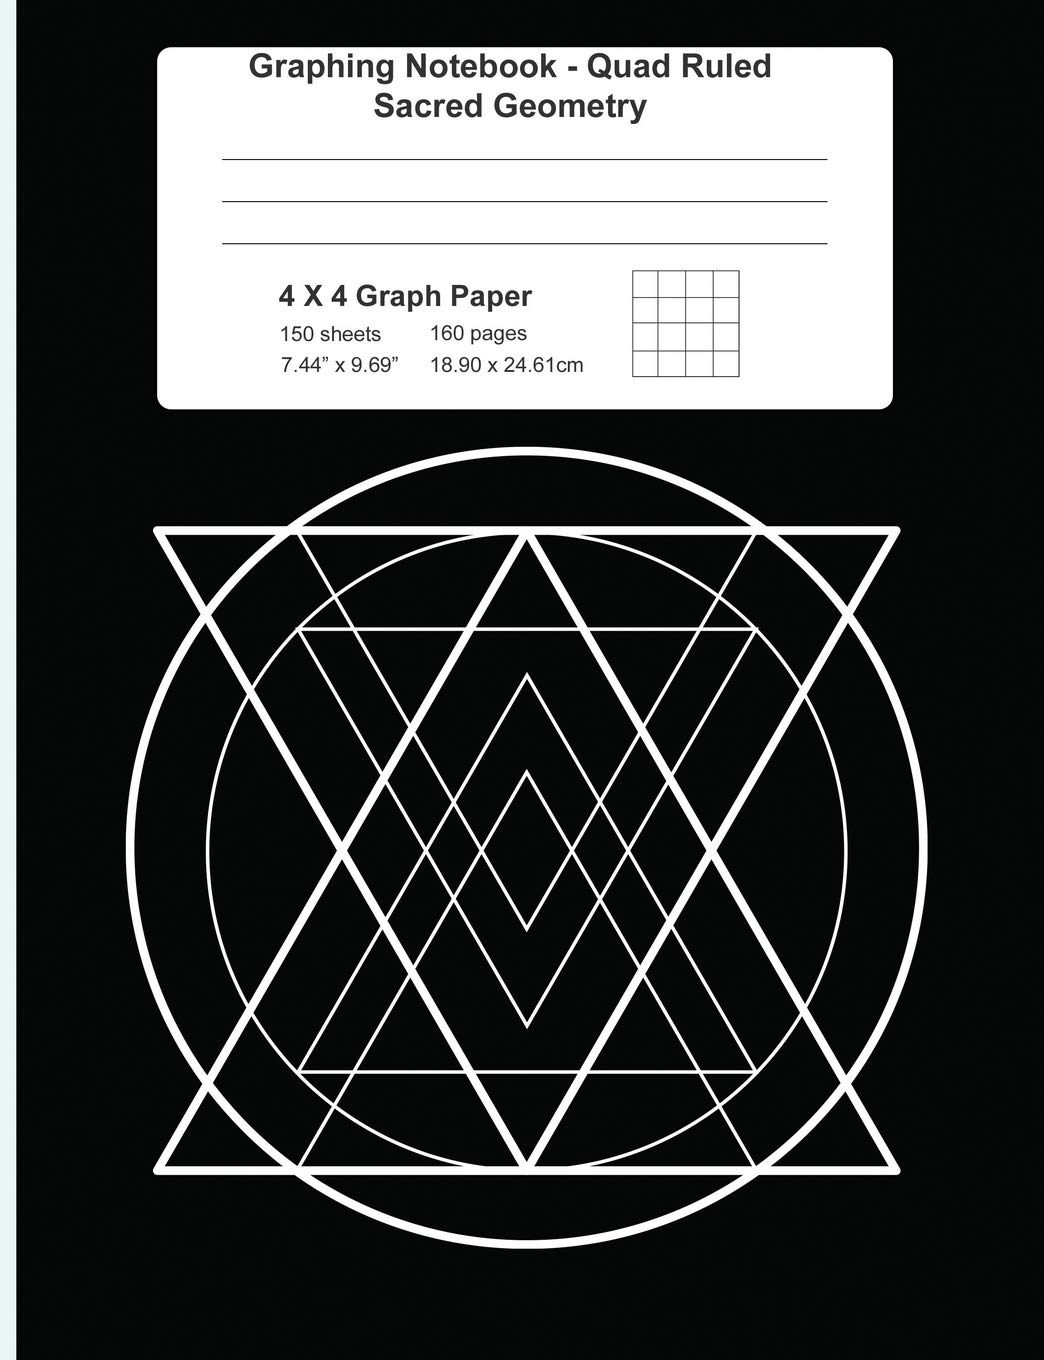 Graphing Notebook Quad Ruled Sacred Geometry 4 X 4 Graph Paper ...